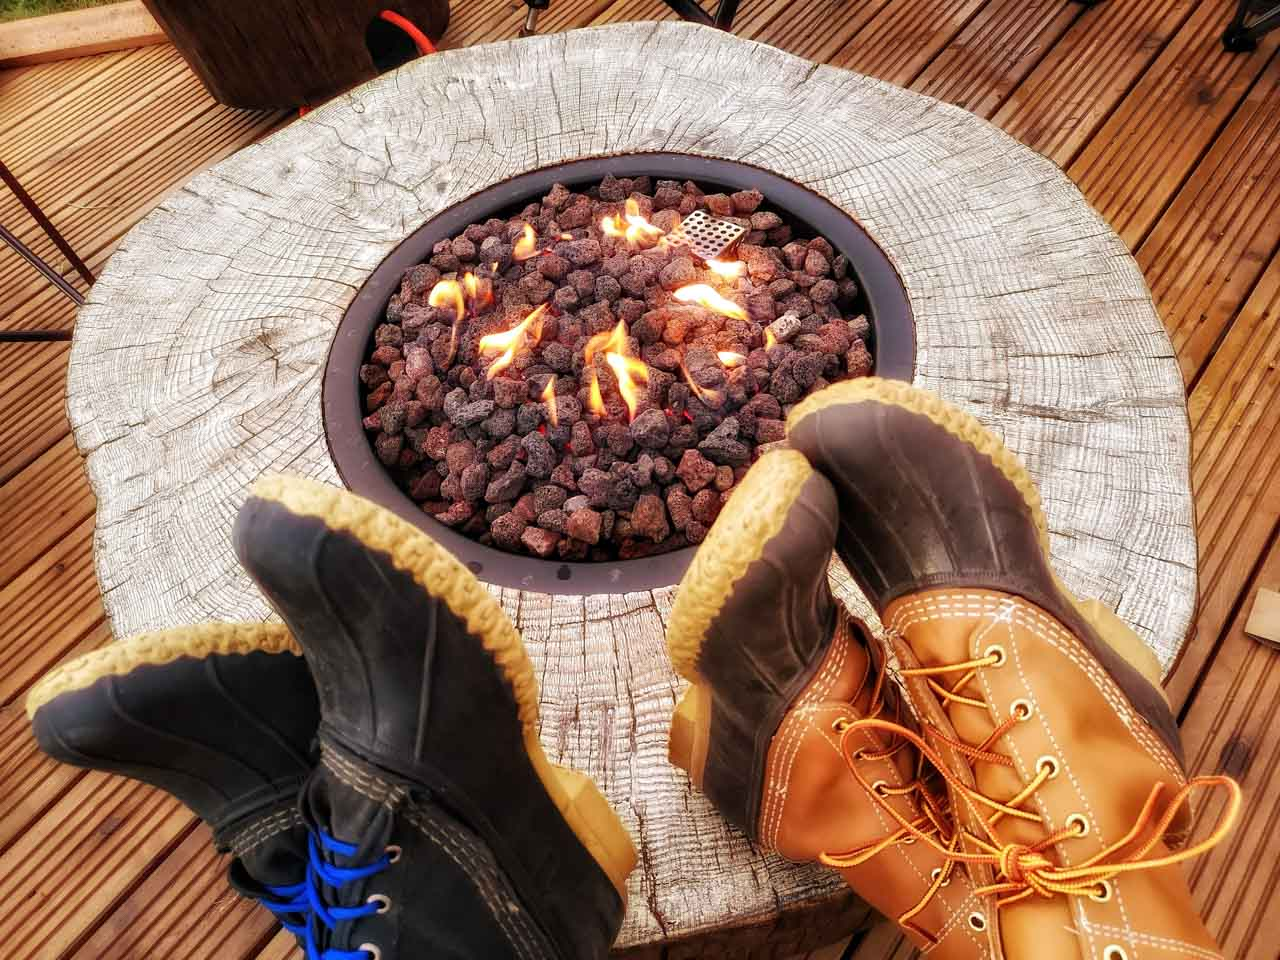 LL Bean Boots - Standing The Test of Time and Weather